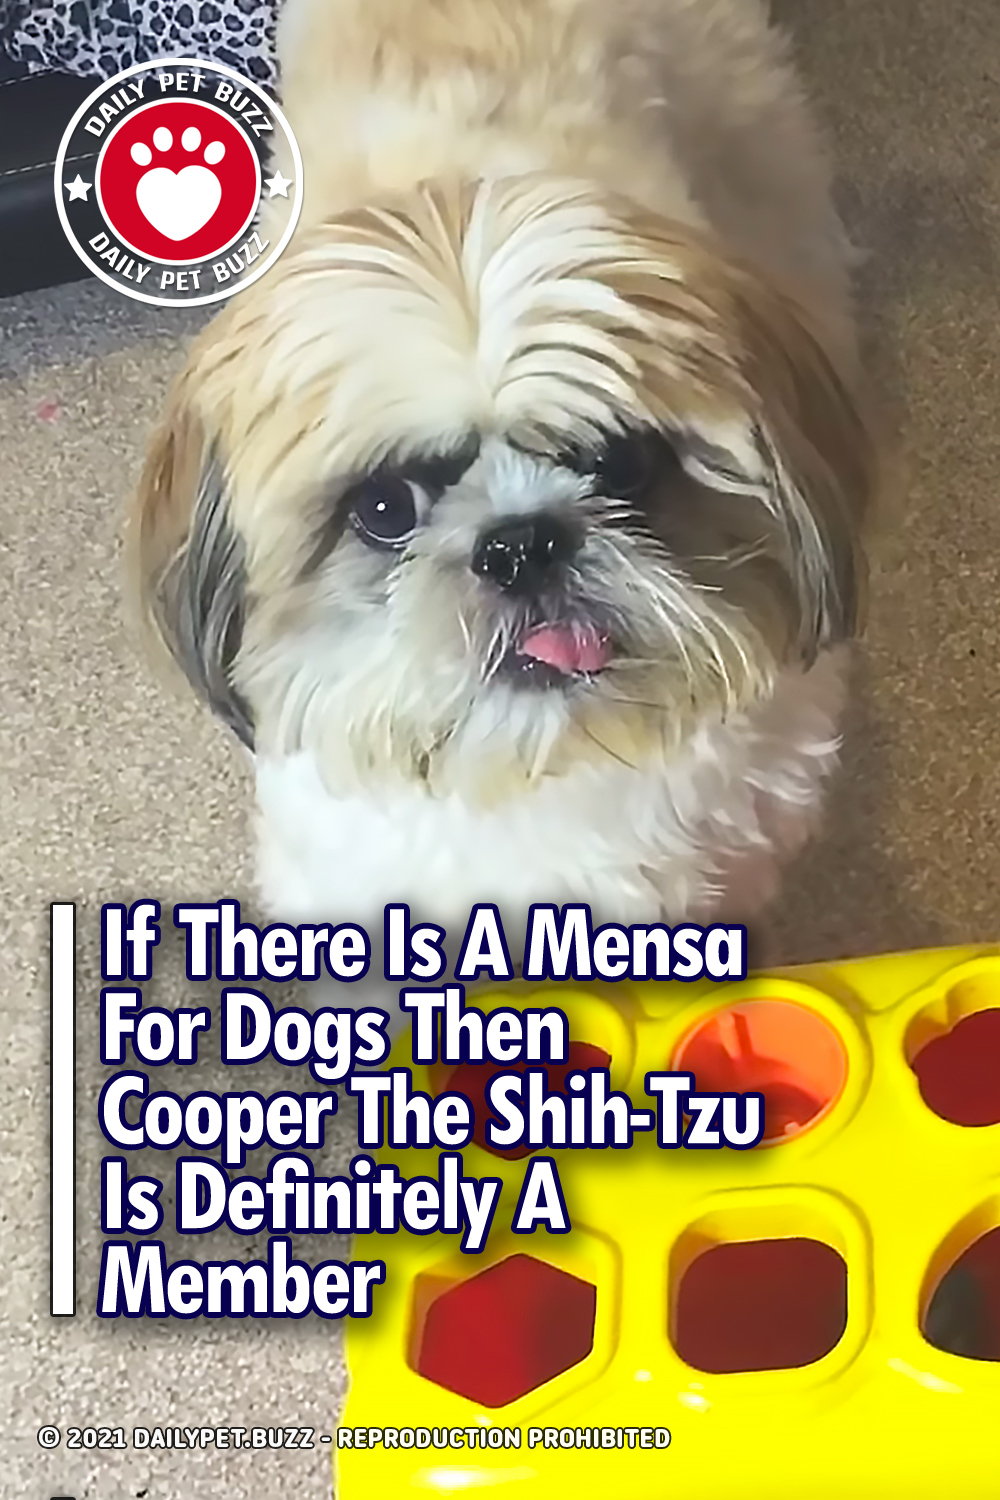 If There Is A Mensa For Dogs Then Cooper The Shih-Tzu Is Definitely A Member